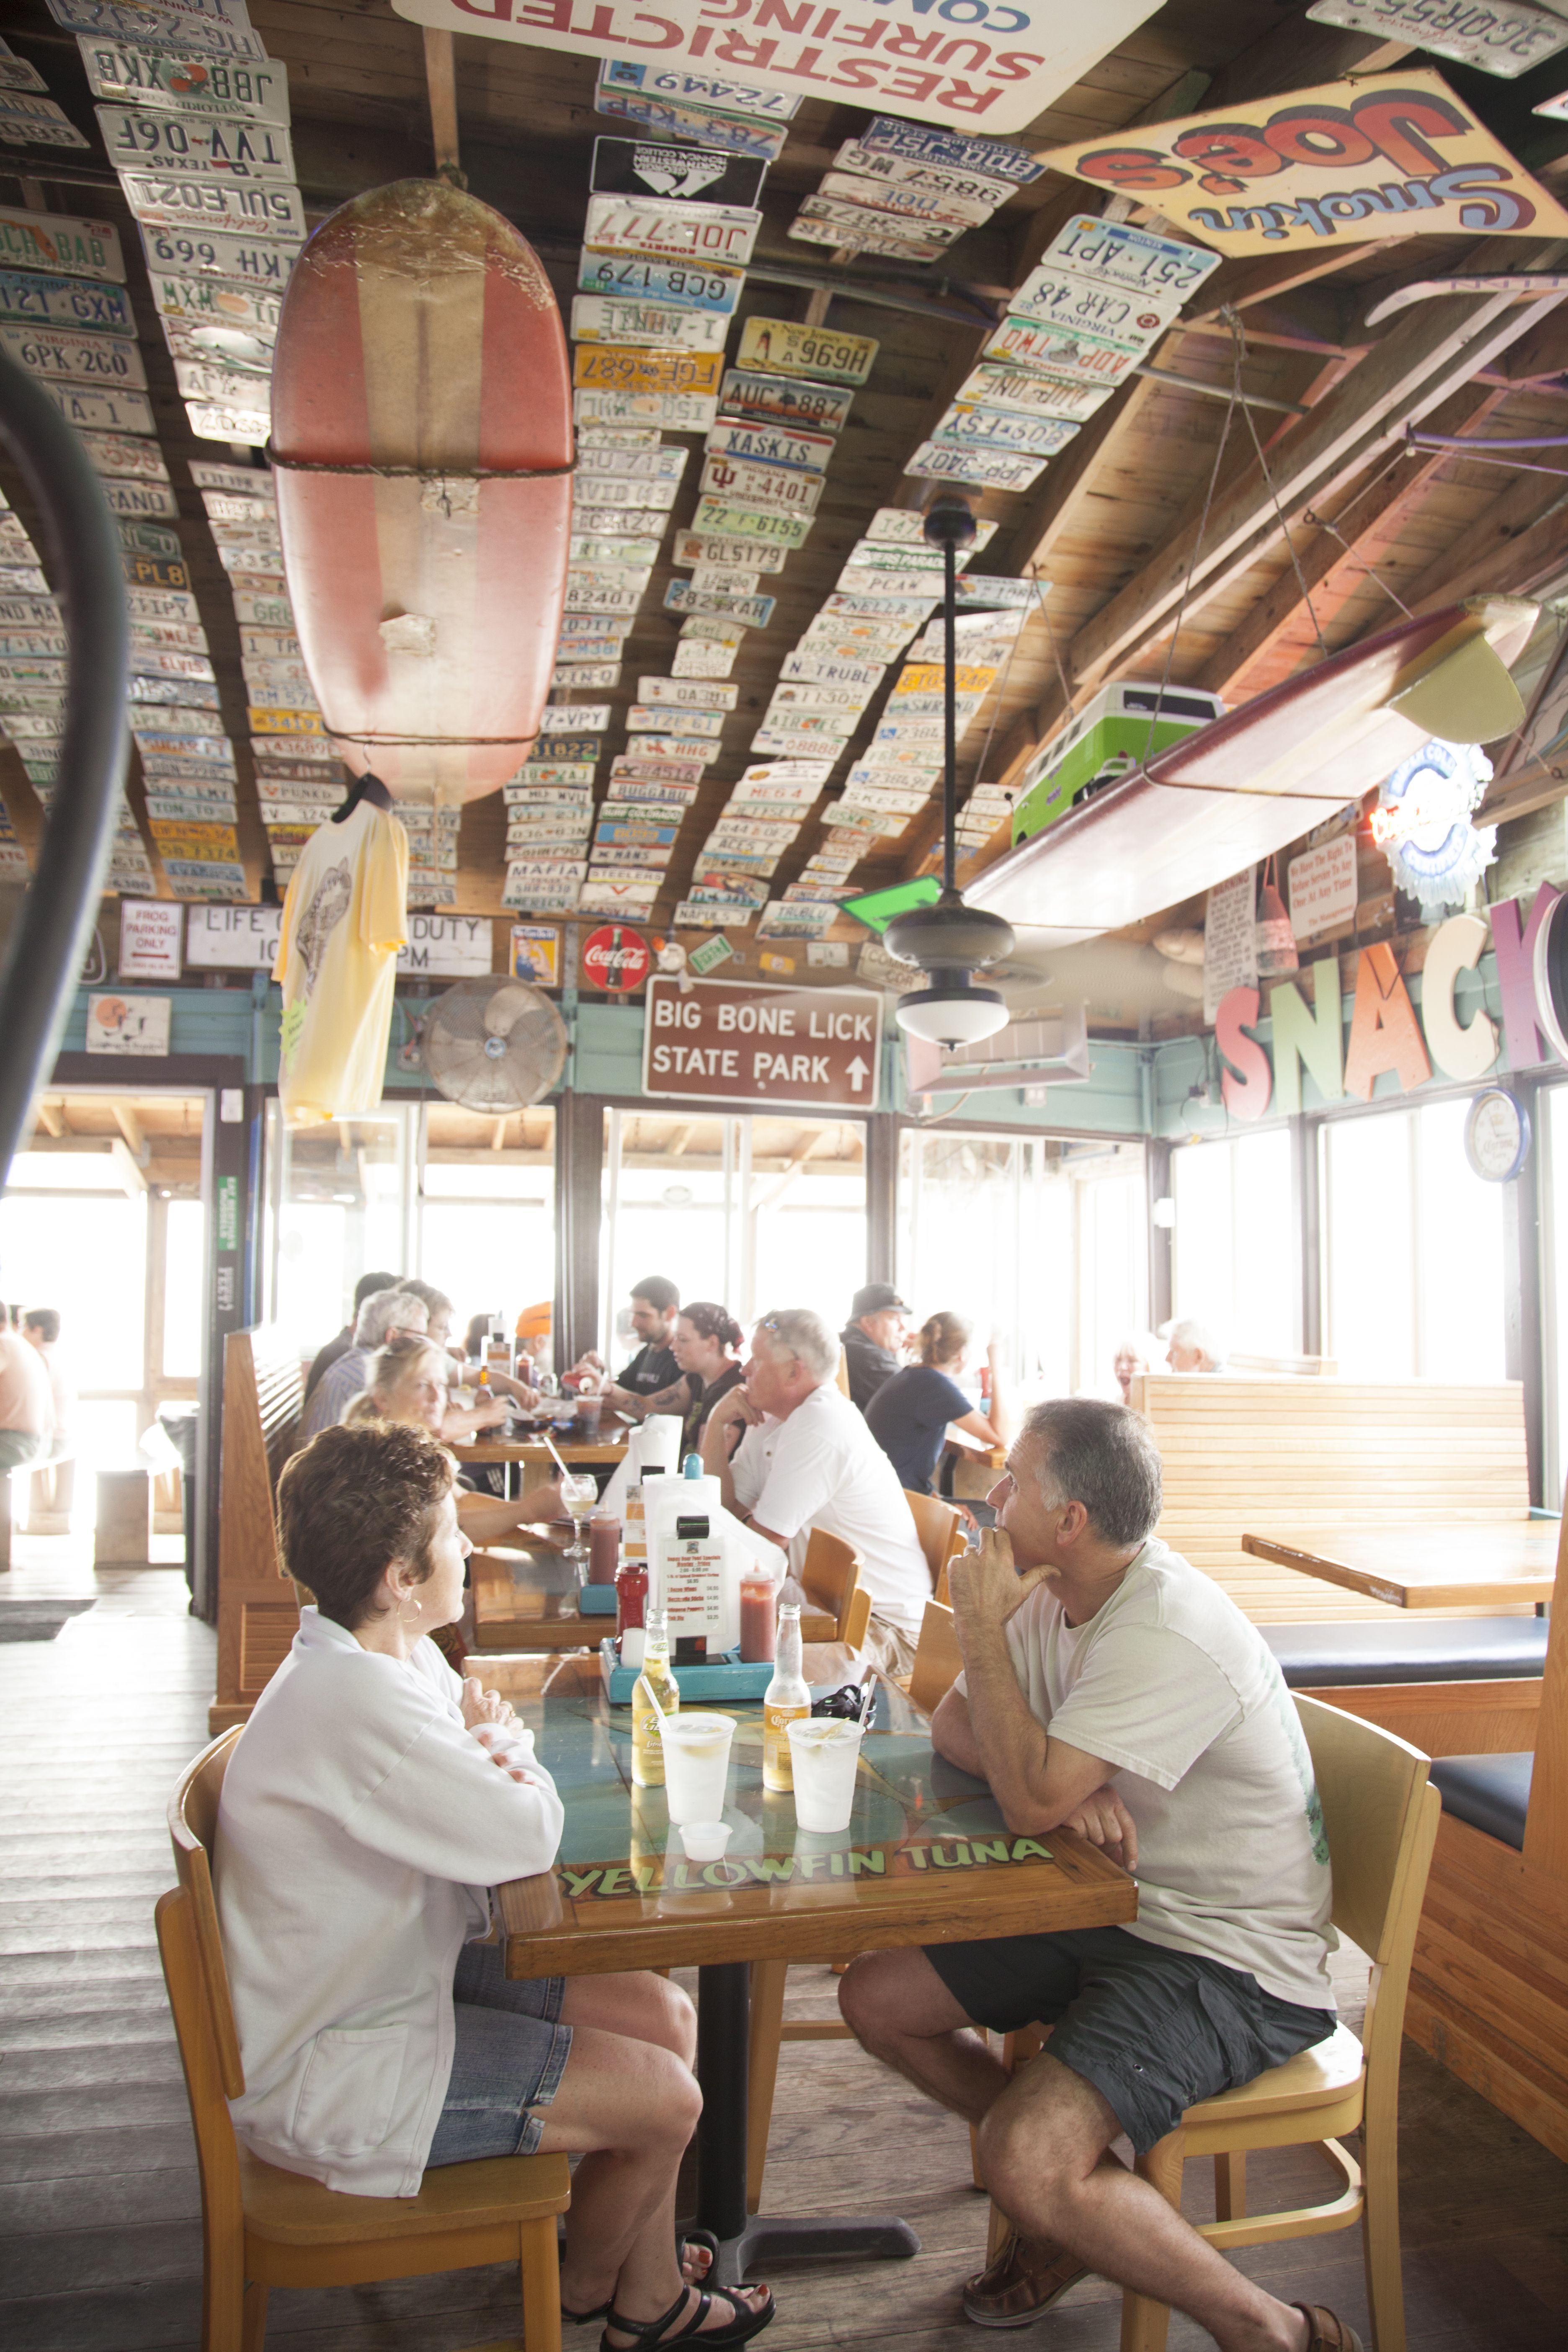 Best Florida Beach Bars 12 Best Florida Beach Bars | High Tides at Snack Jack | Flagler Beach12 Best Florida Beach Bars | High Tides at Snack Jack | Flagler Beach